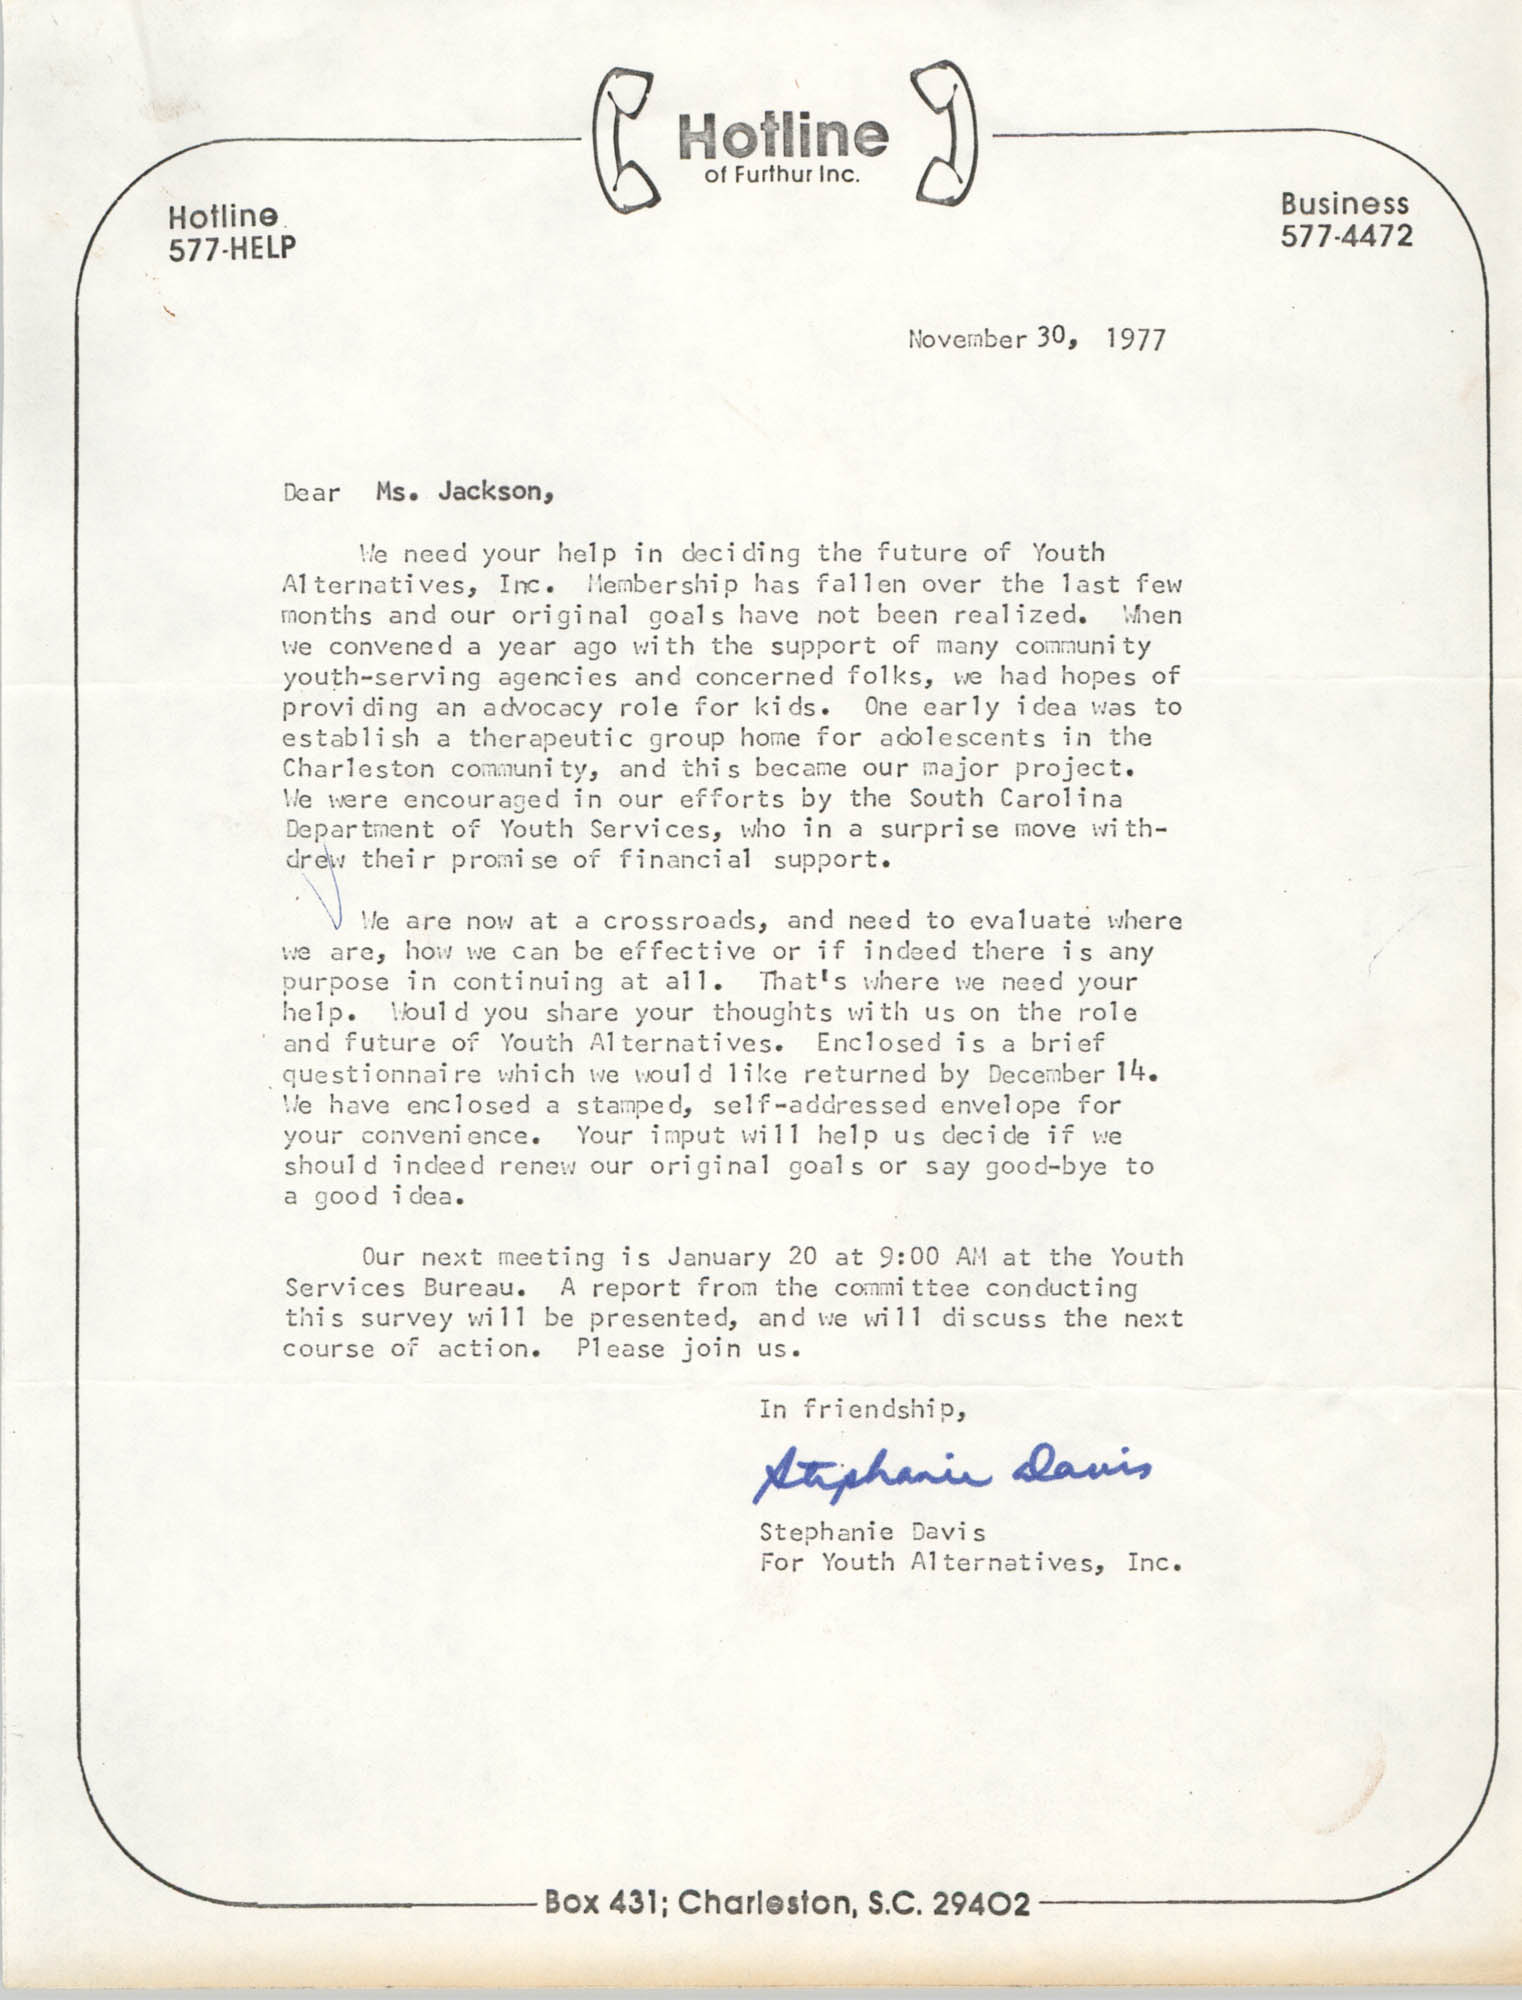 Letter from Stephanie Davis to Christine O. Jackson, November 30, 1977